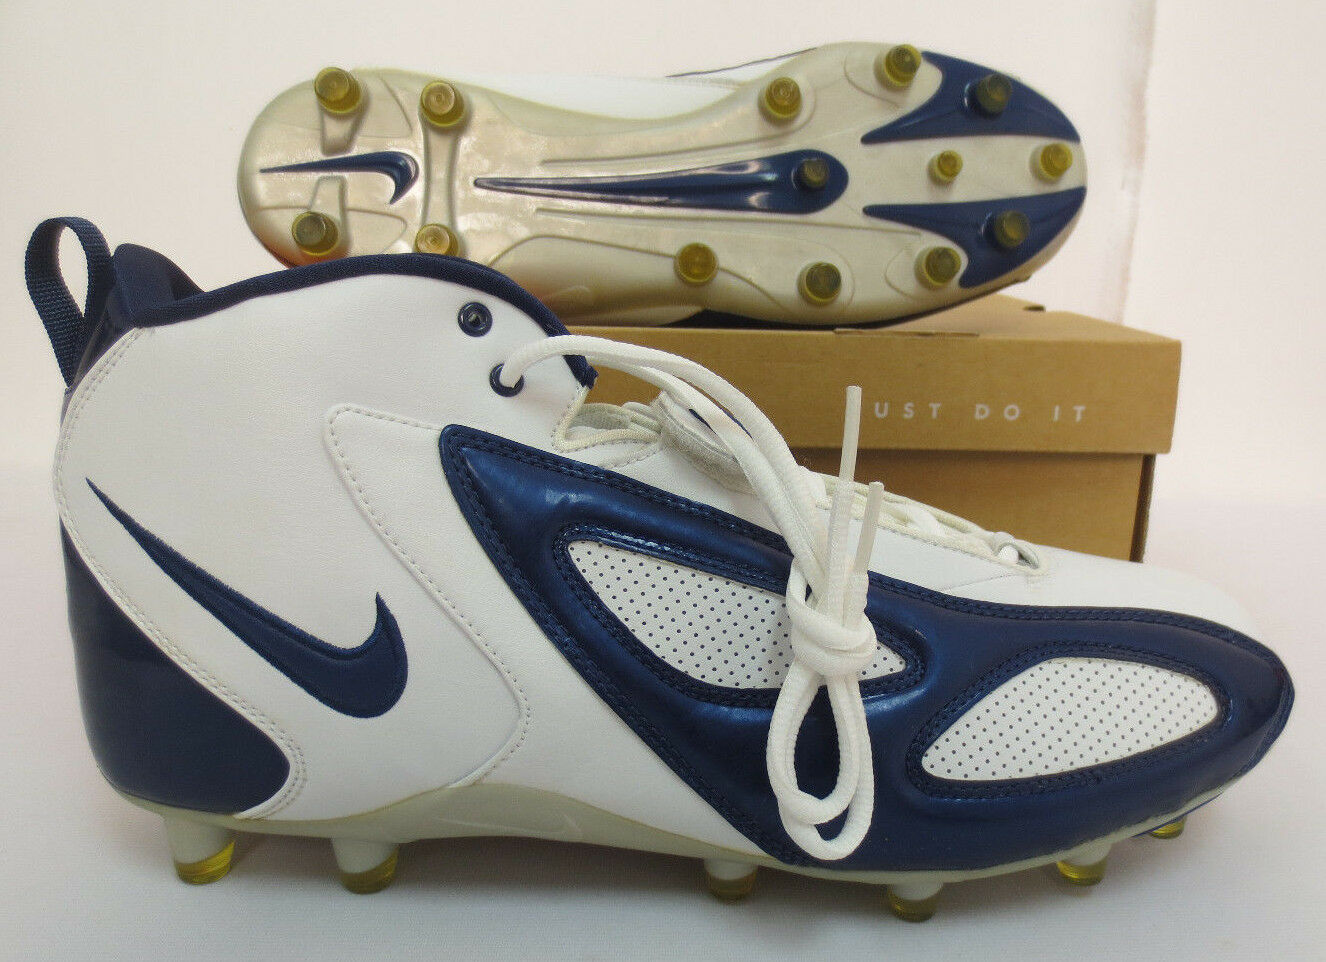 BLADE TD SIZE 14 FOOTBALL CLEATS NIKE 308363 141 NEW PRACTICE GAME SPORTS SHOES